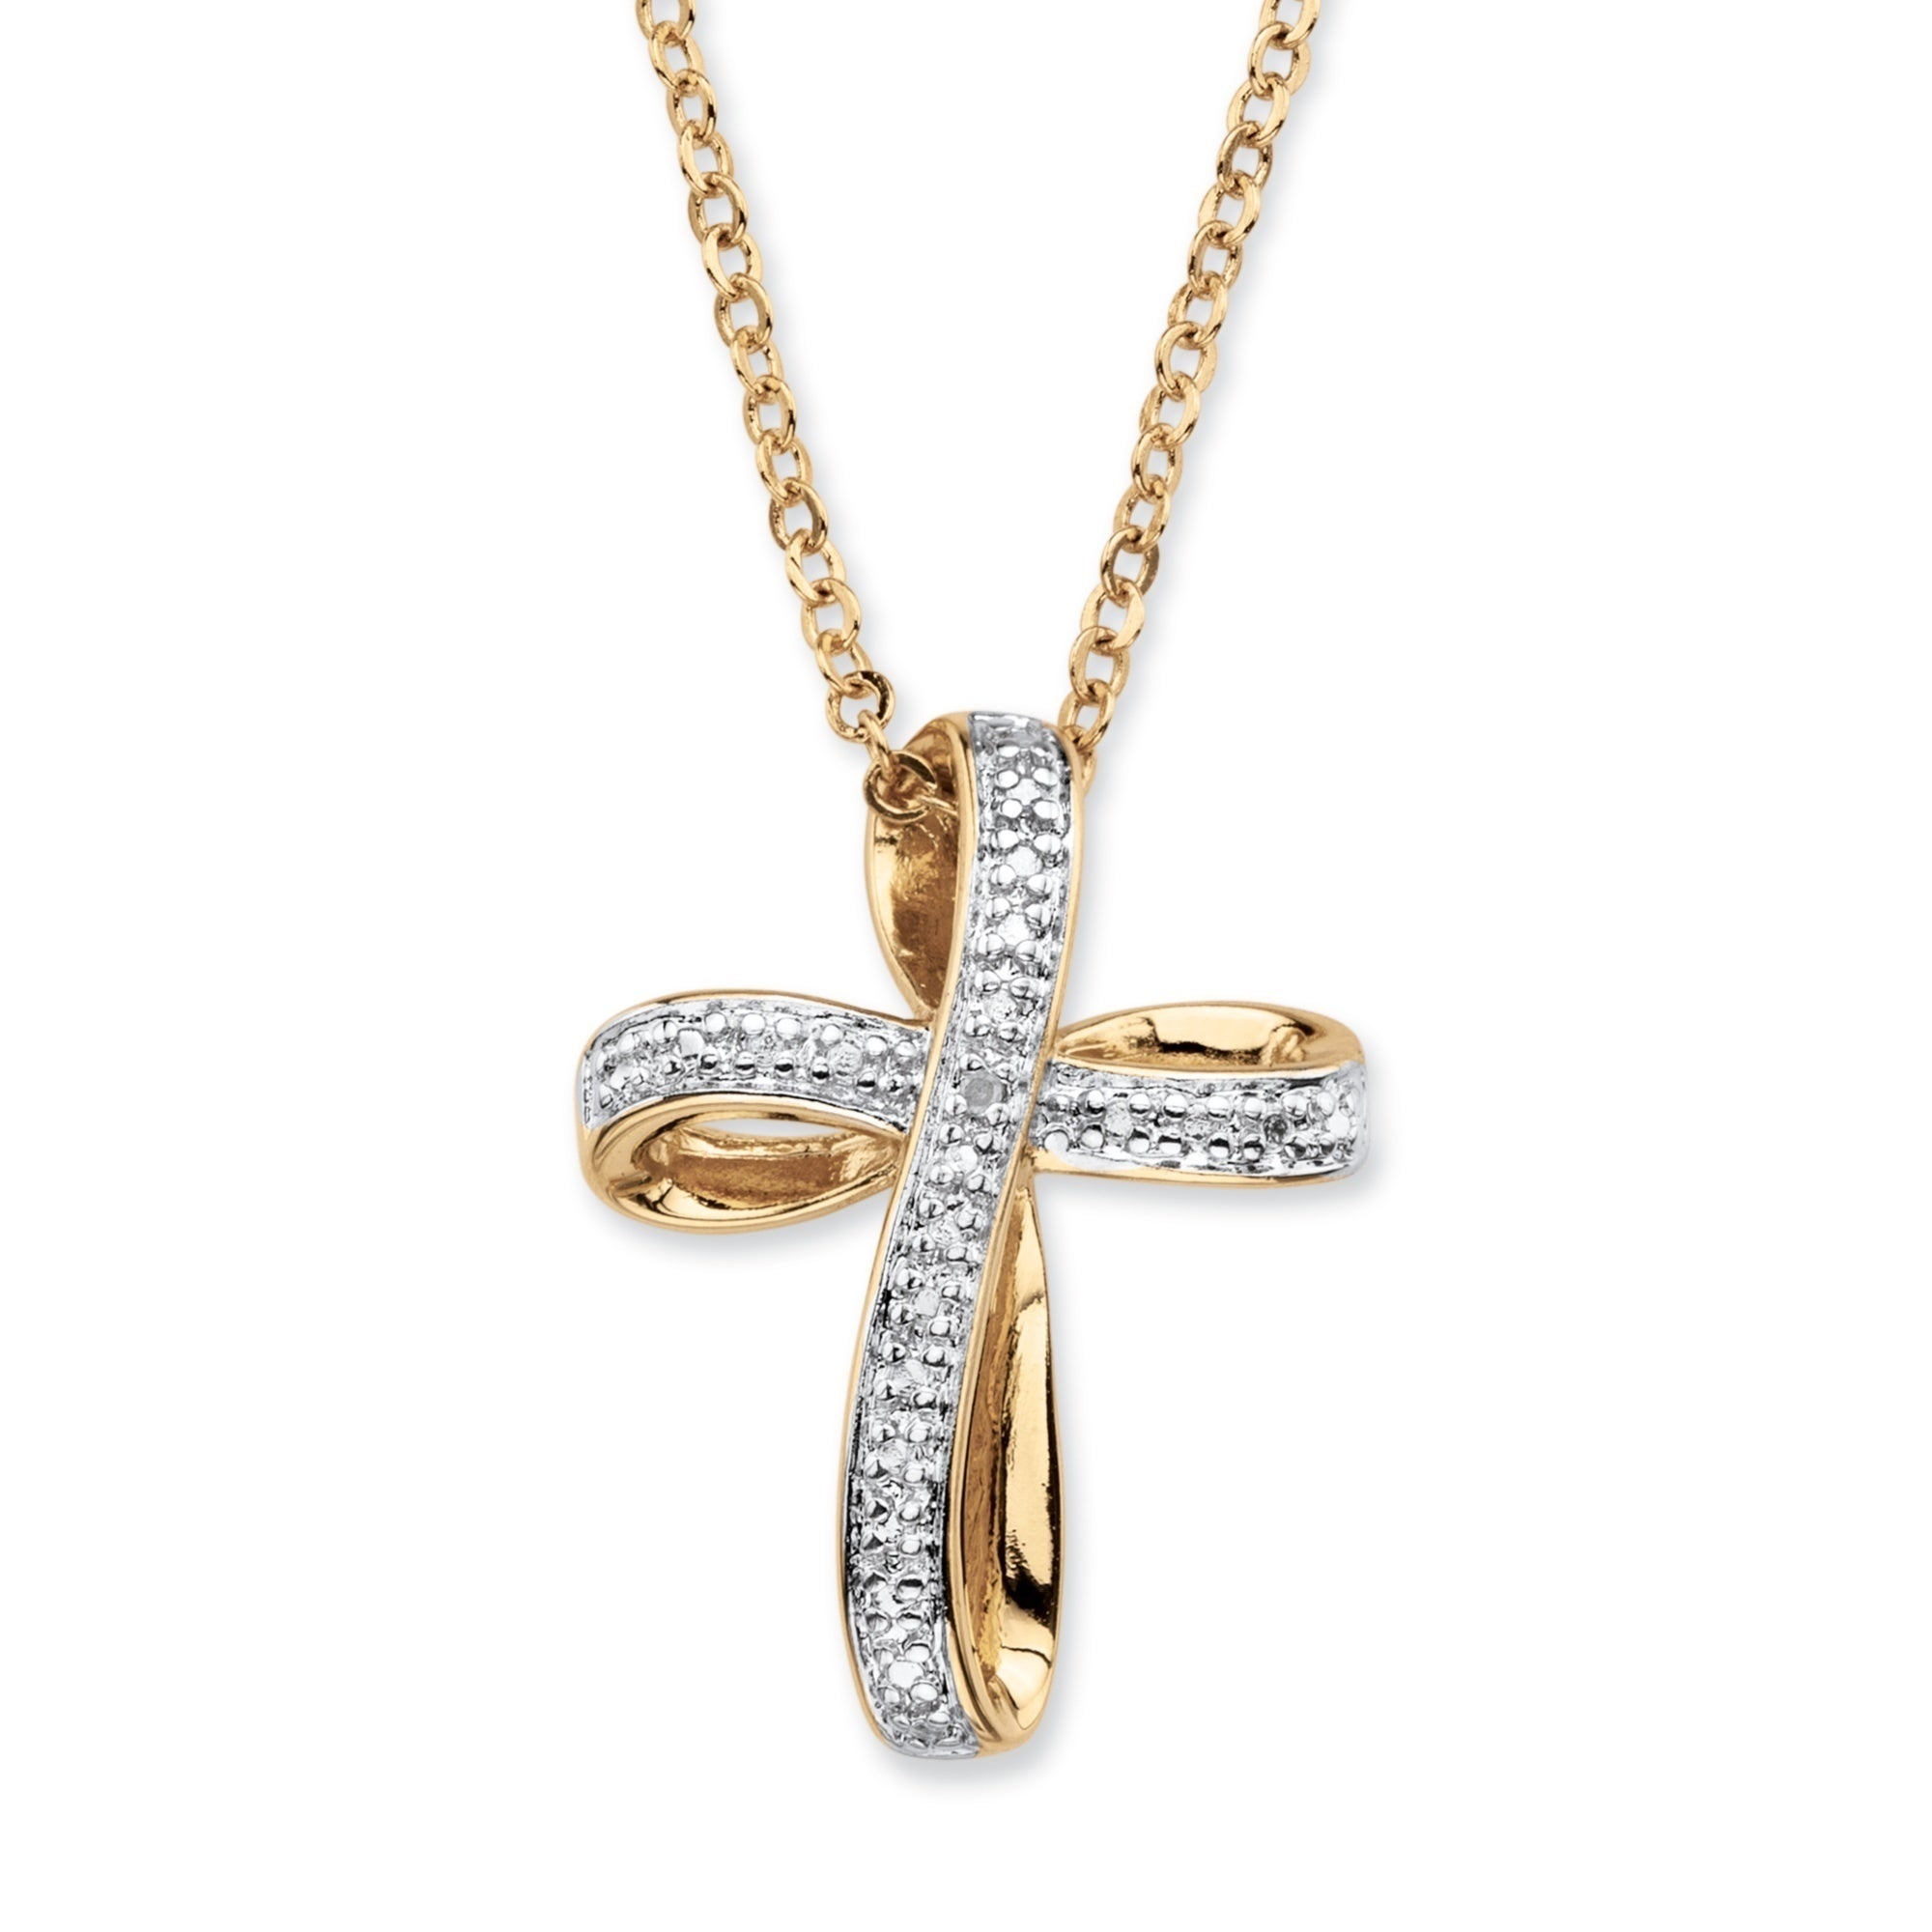 12c3a3479 Buy Religious Necklaces Online at Overstock | Our Best Necklaces Deals